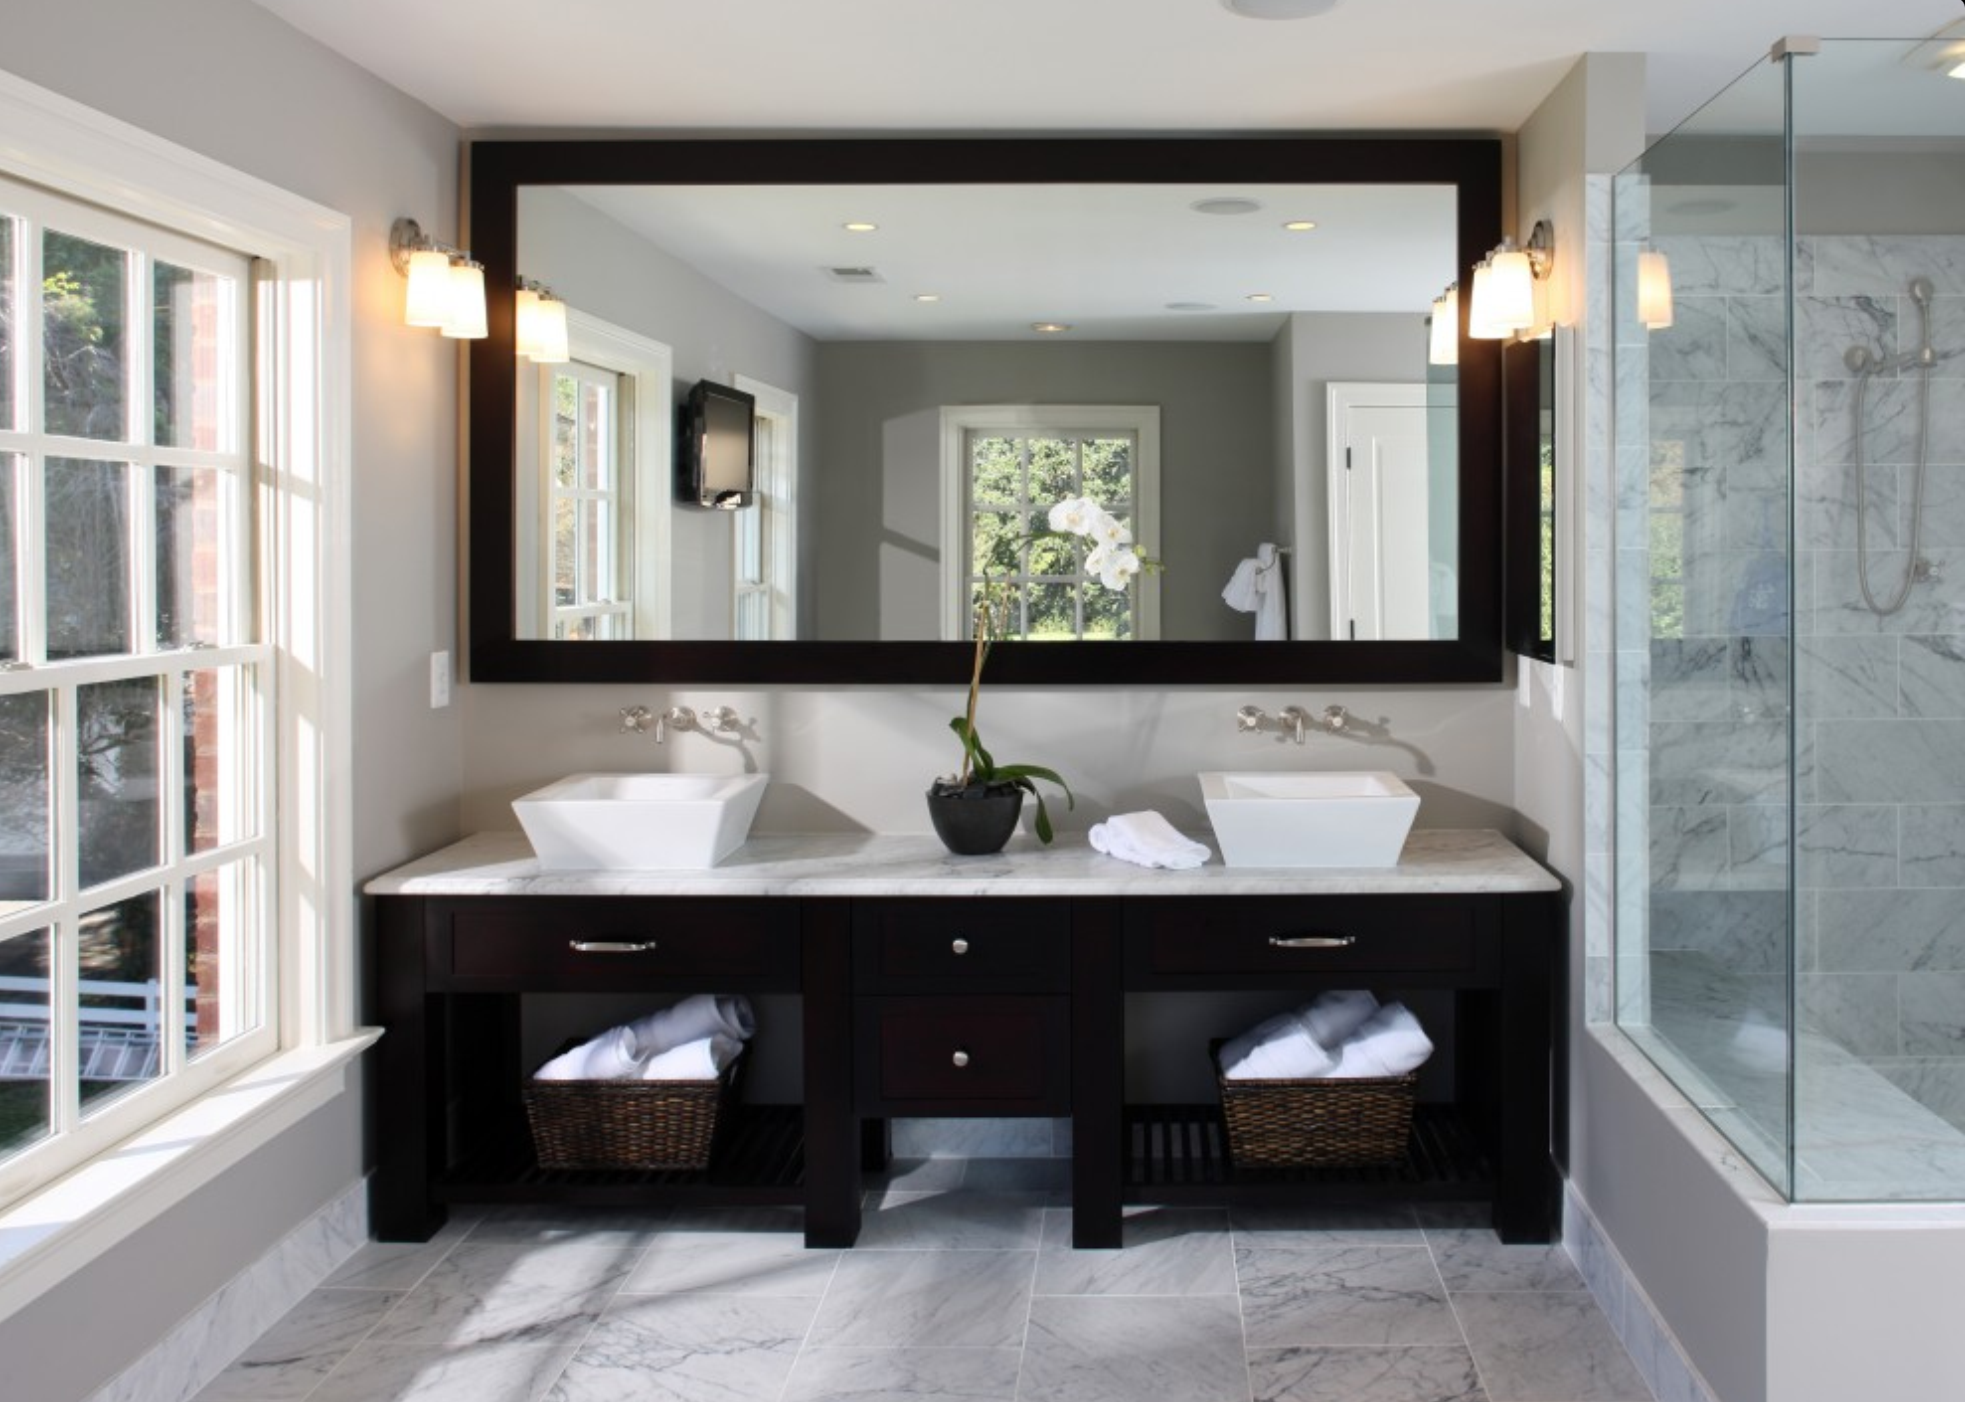 Remodeled Bathrooms Fascinating Preparing For A Bathroom Remodel  Homeadvisor Inspiration Design